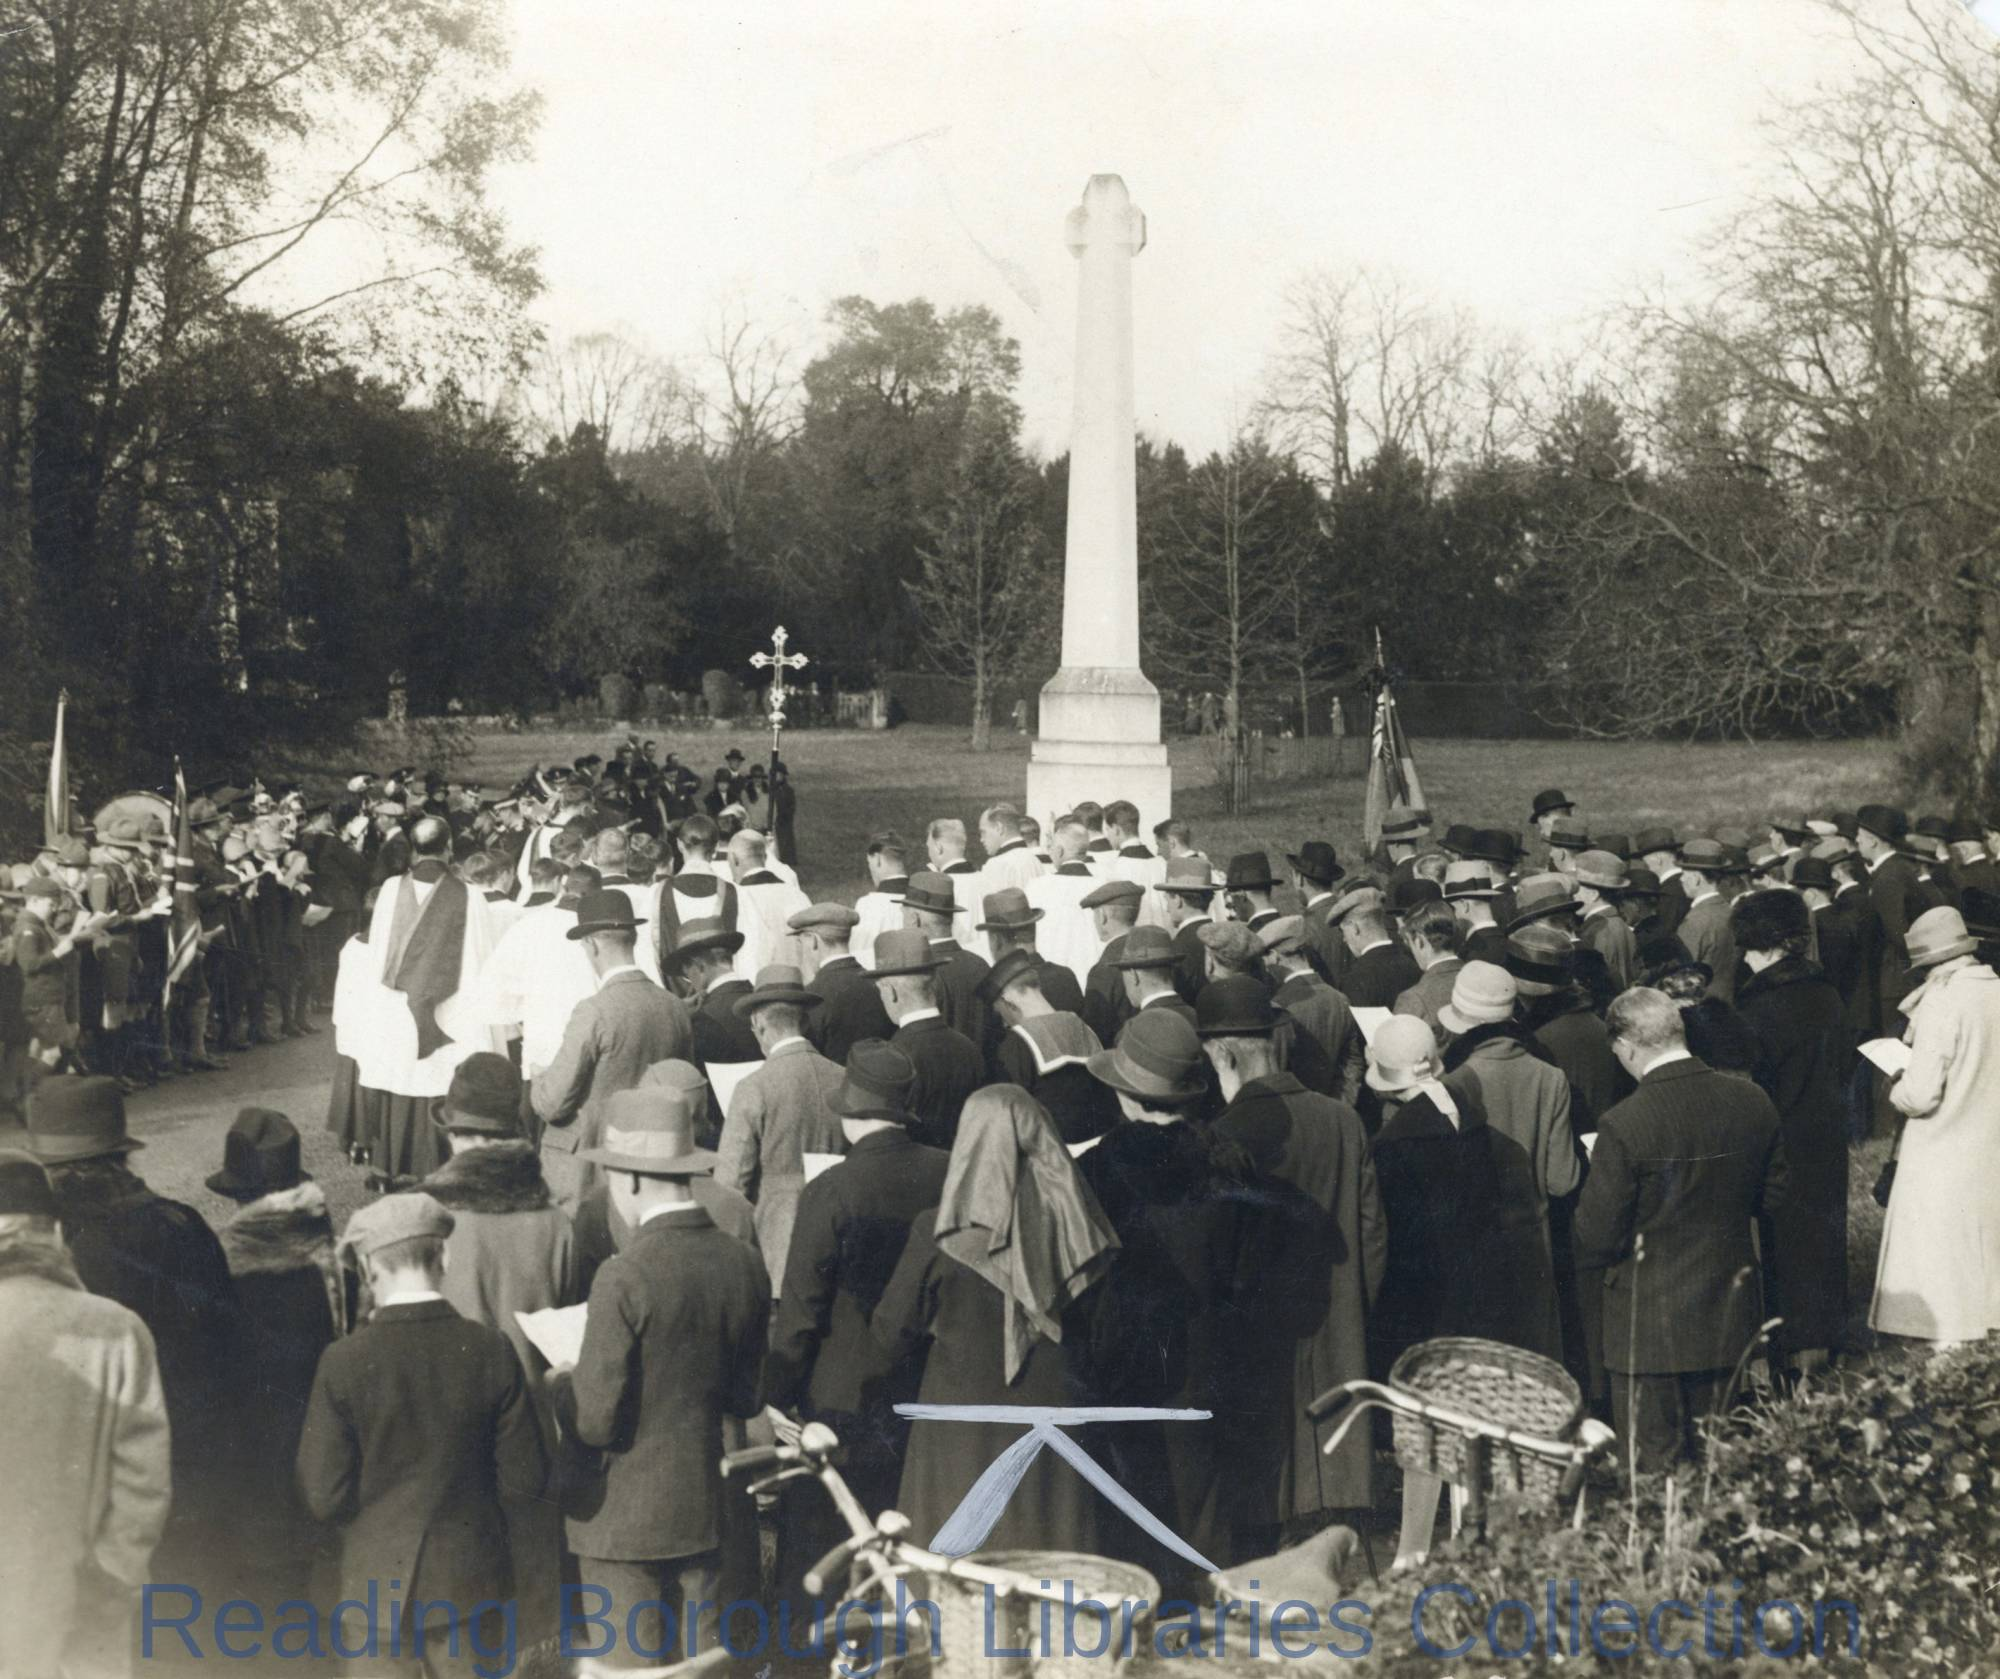 Remembrance Day service at the War Memorial, Wargrave, 1927.